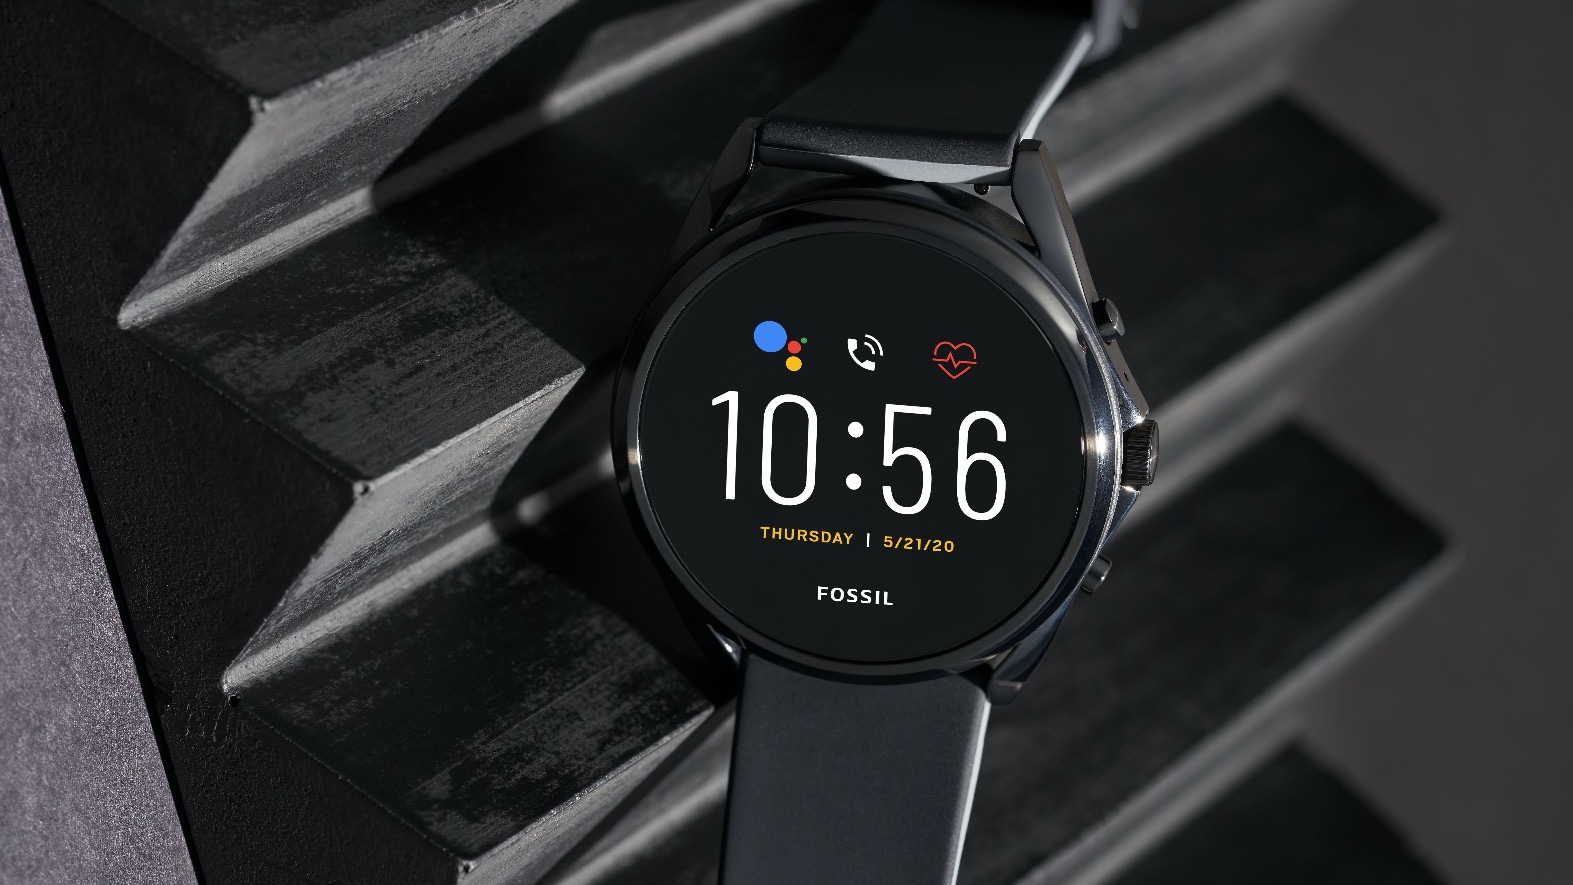 Fossil launches new LTE smartwatch and MK Gen 5E at CES